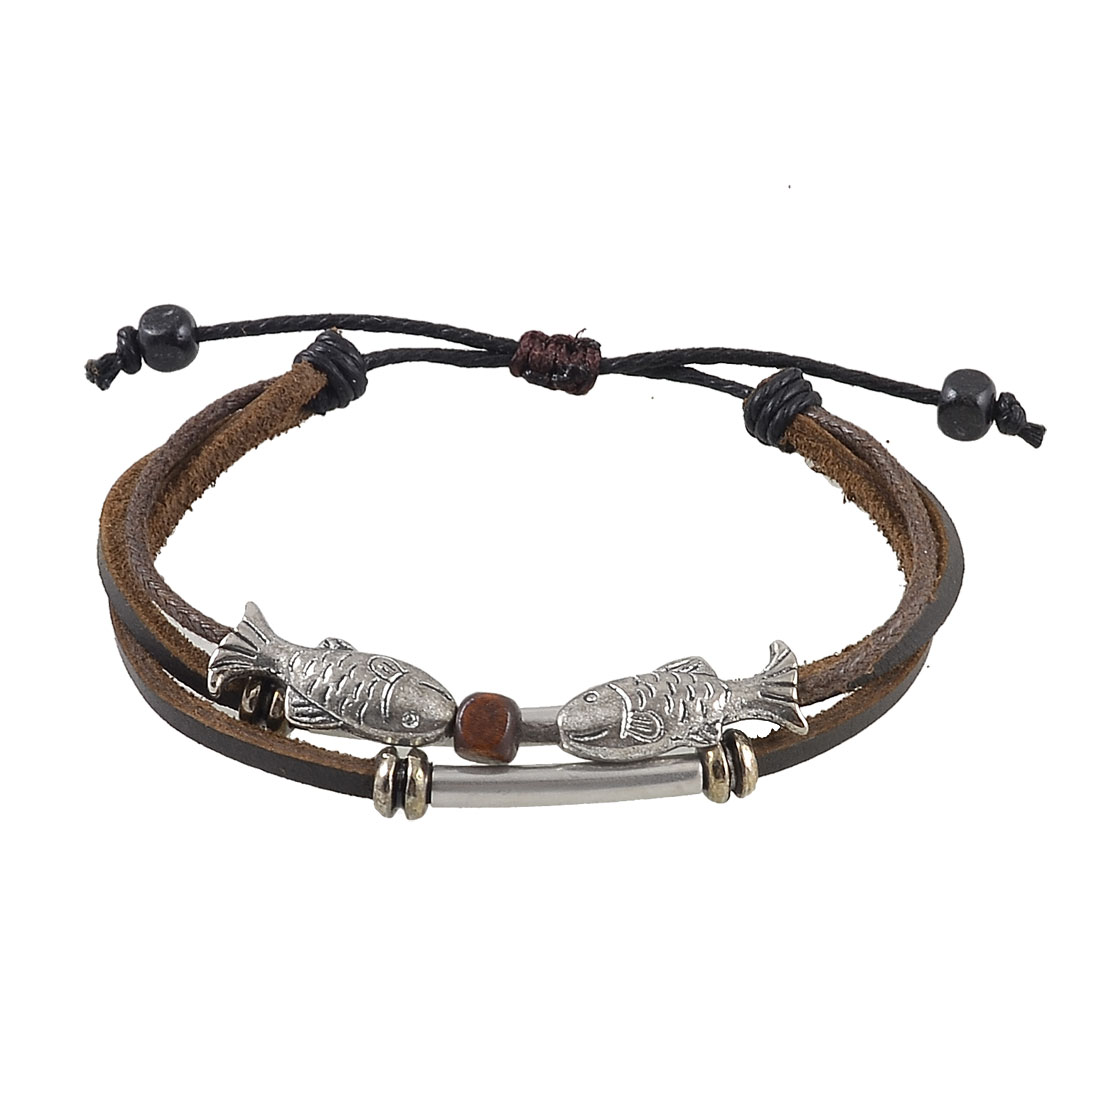 Unisex Three Rows Style Metal Fish Decor Faux Leather Wrist Braid Bracelet Brown